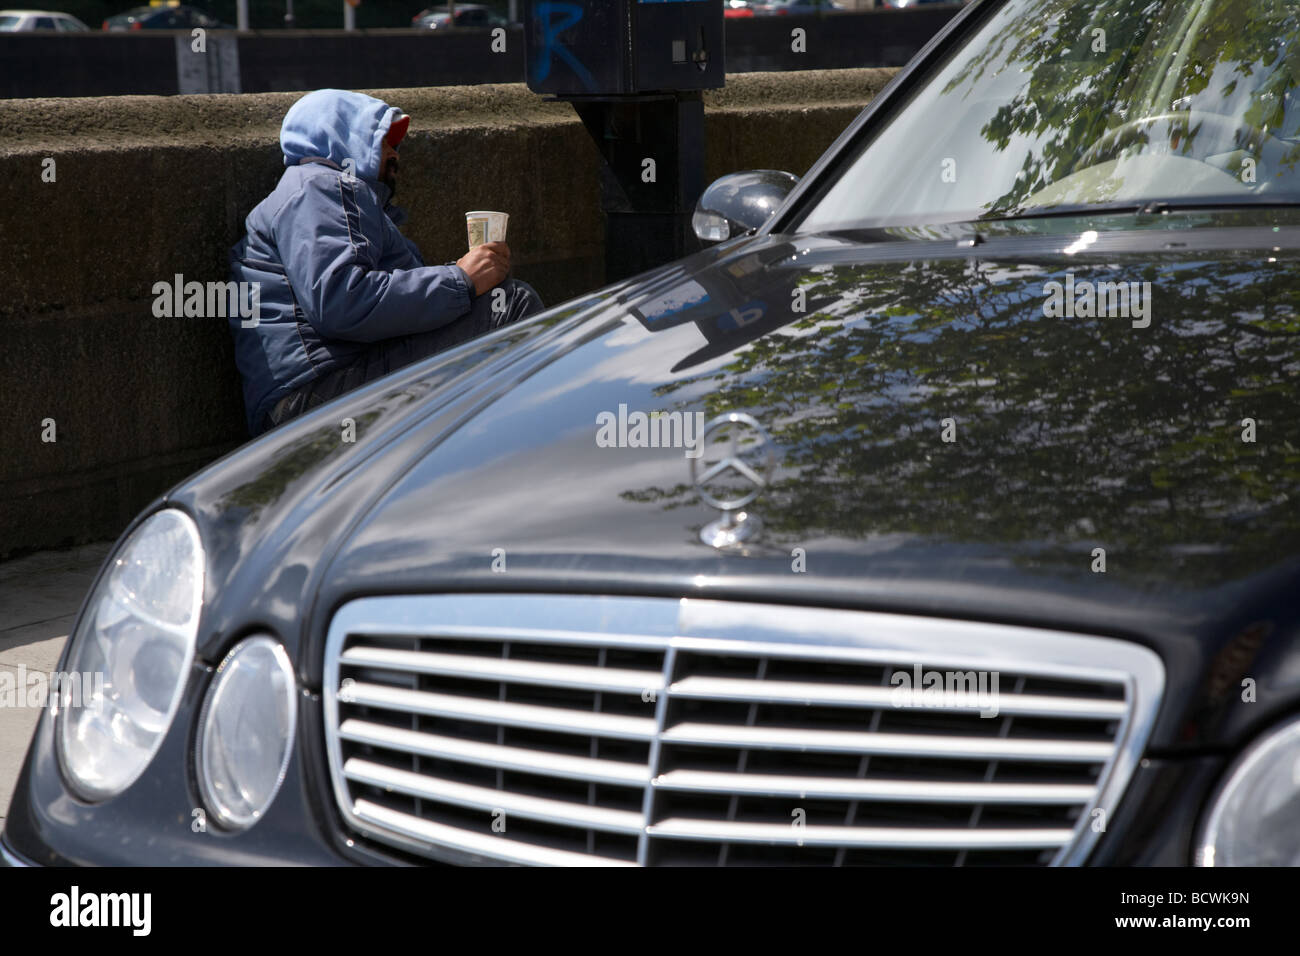 male man street beggar lying beside a parking ticket machine and mercedes car looking for spare change dublin city - Stock Image